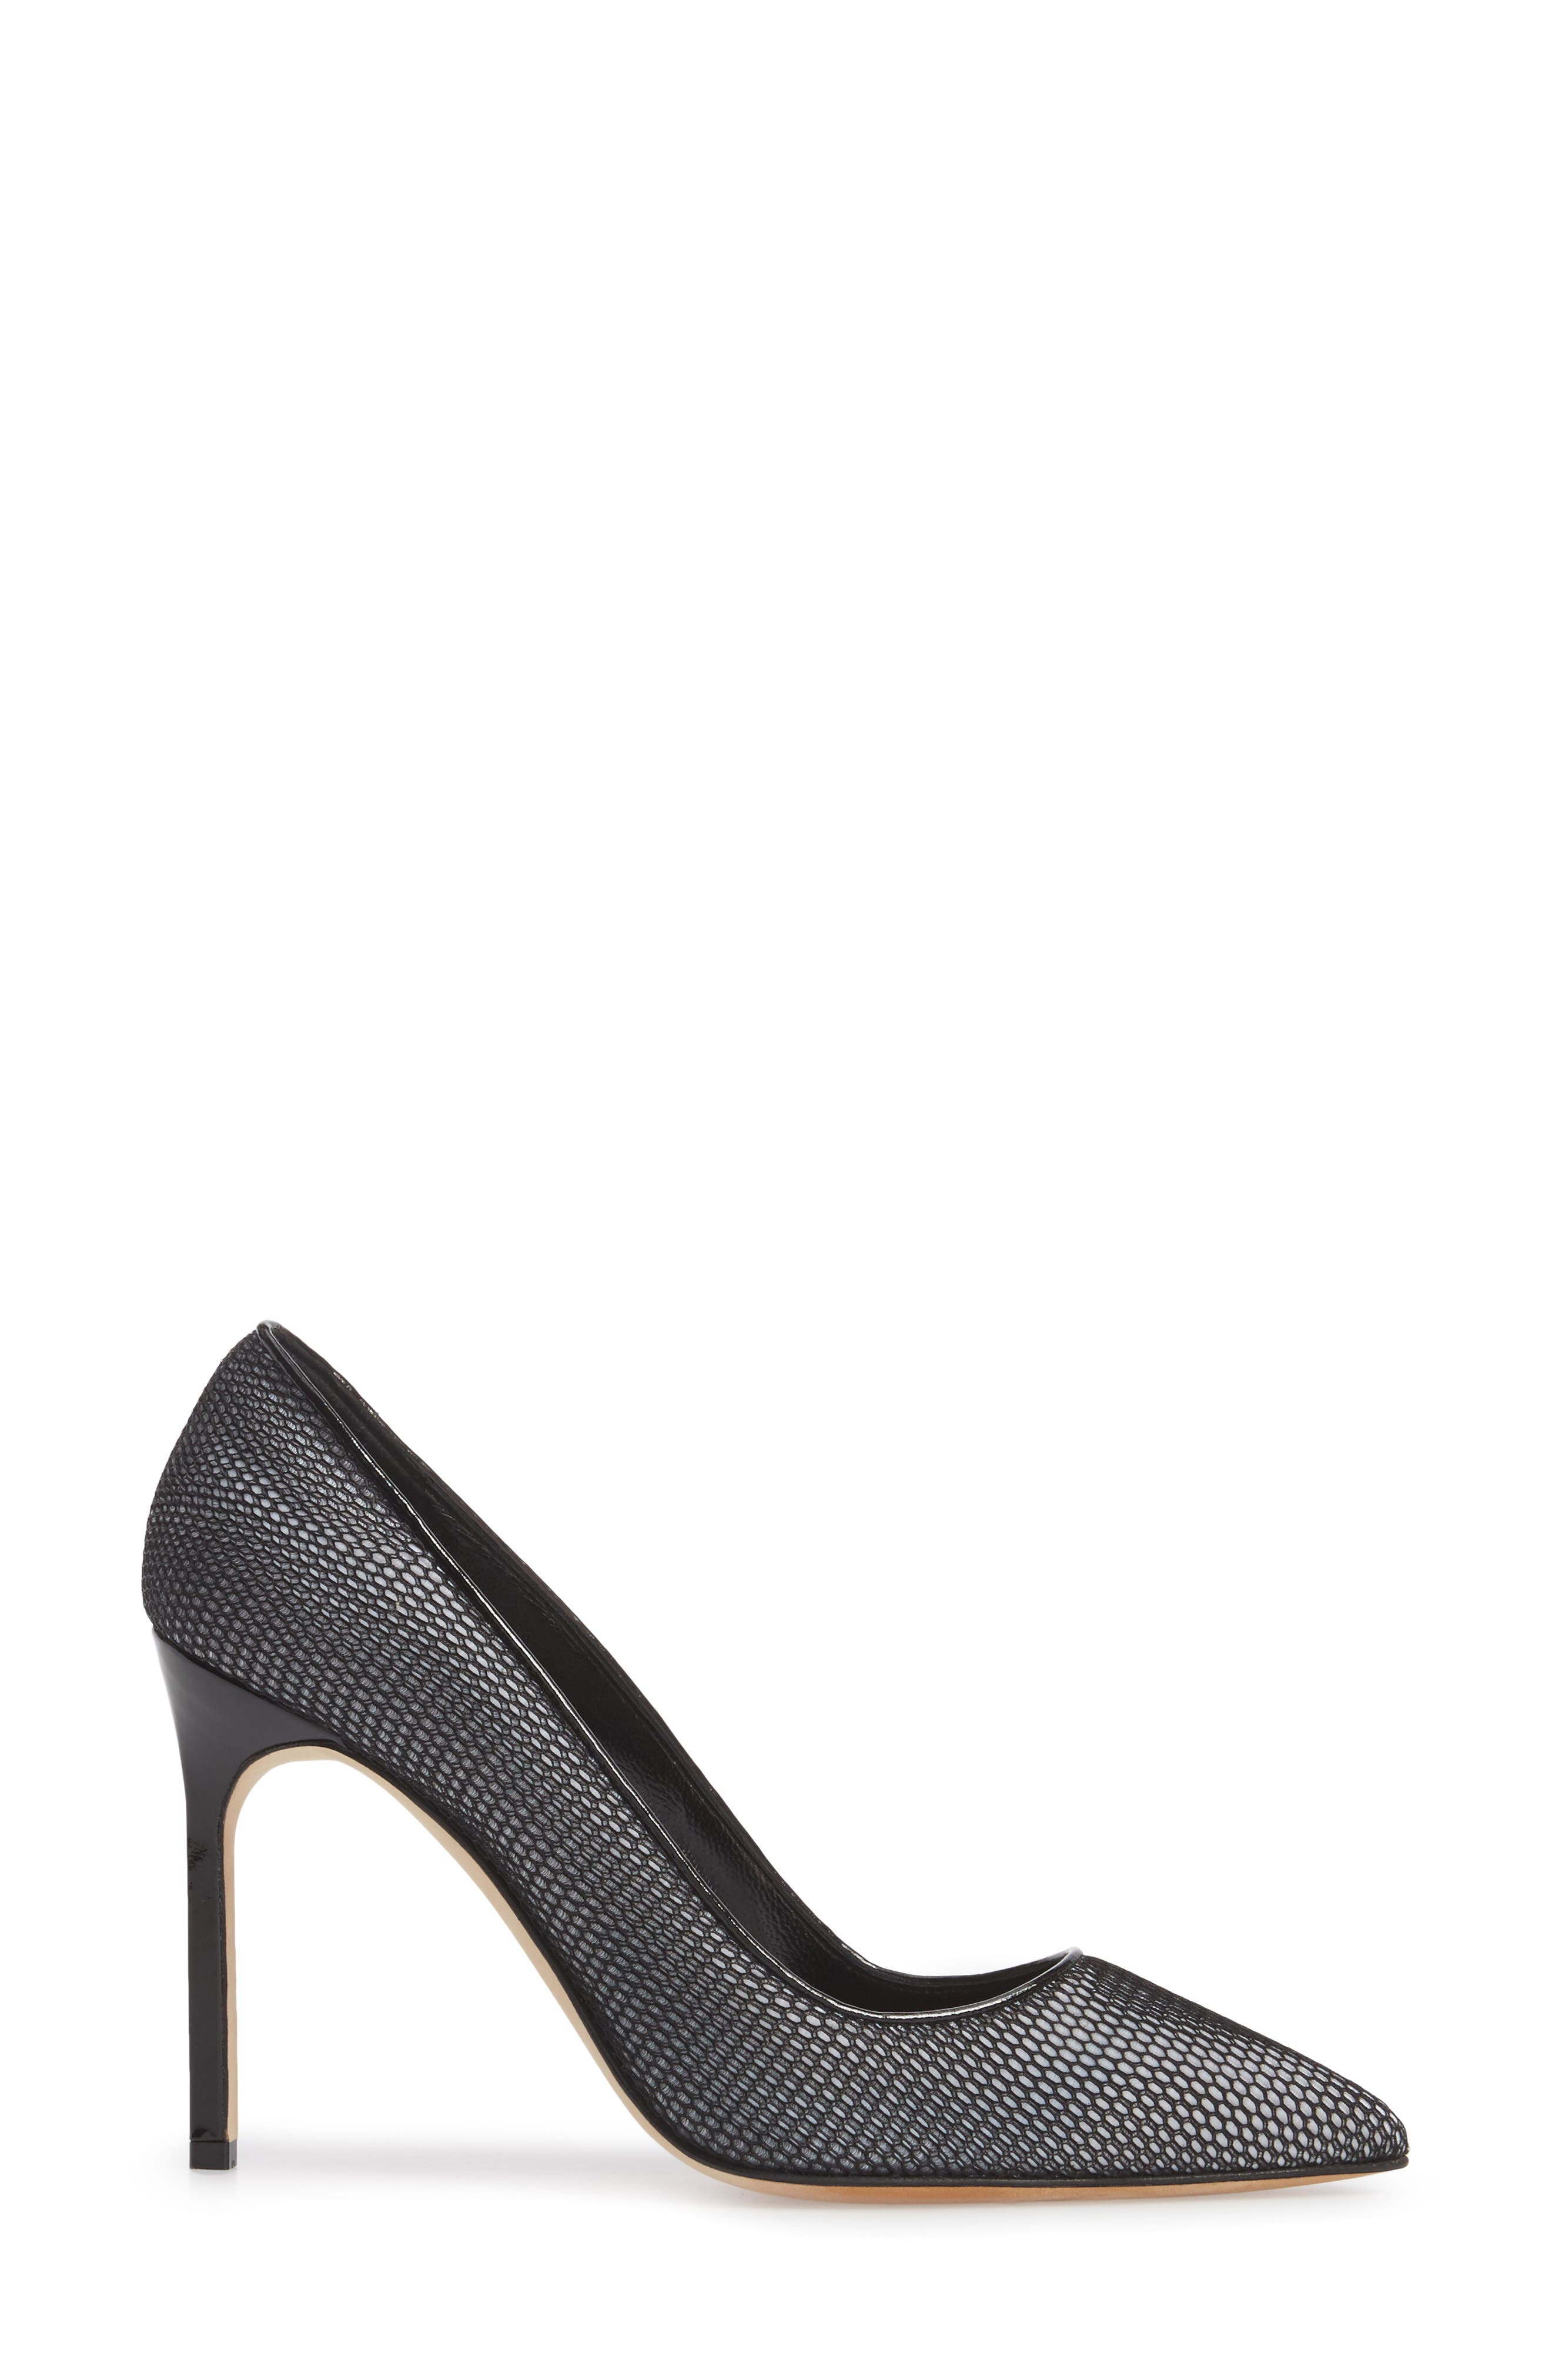 BB Pointy Toe Pump,                             Alternate thumbnail 3, color,                             020